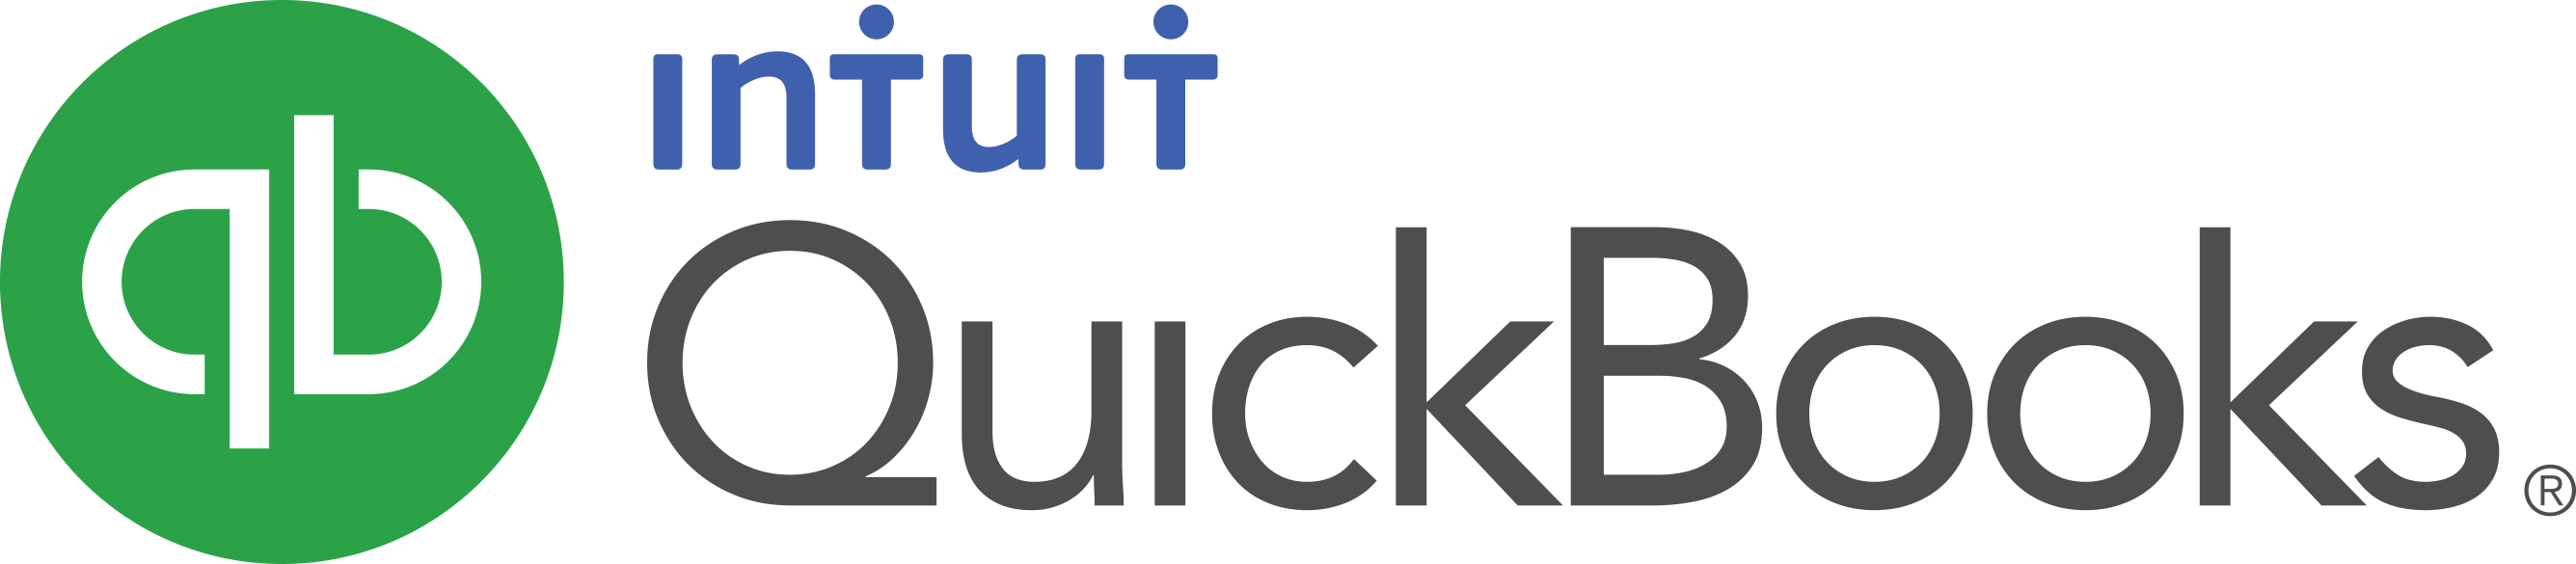 quickbooks onemint partner network